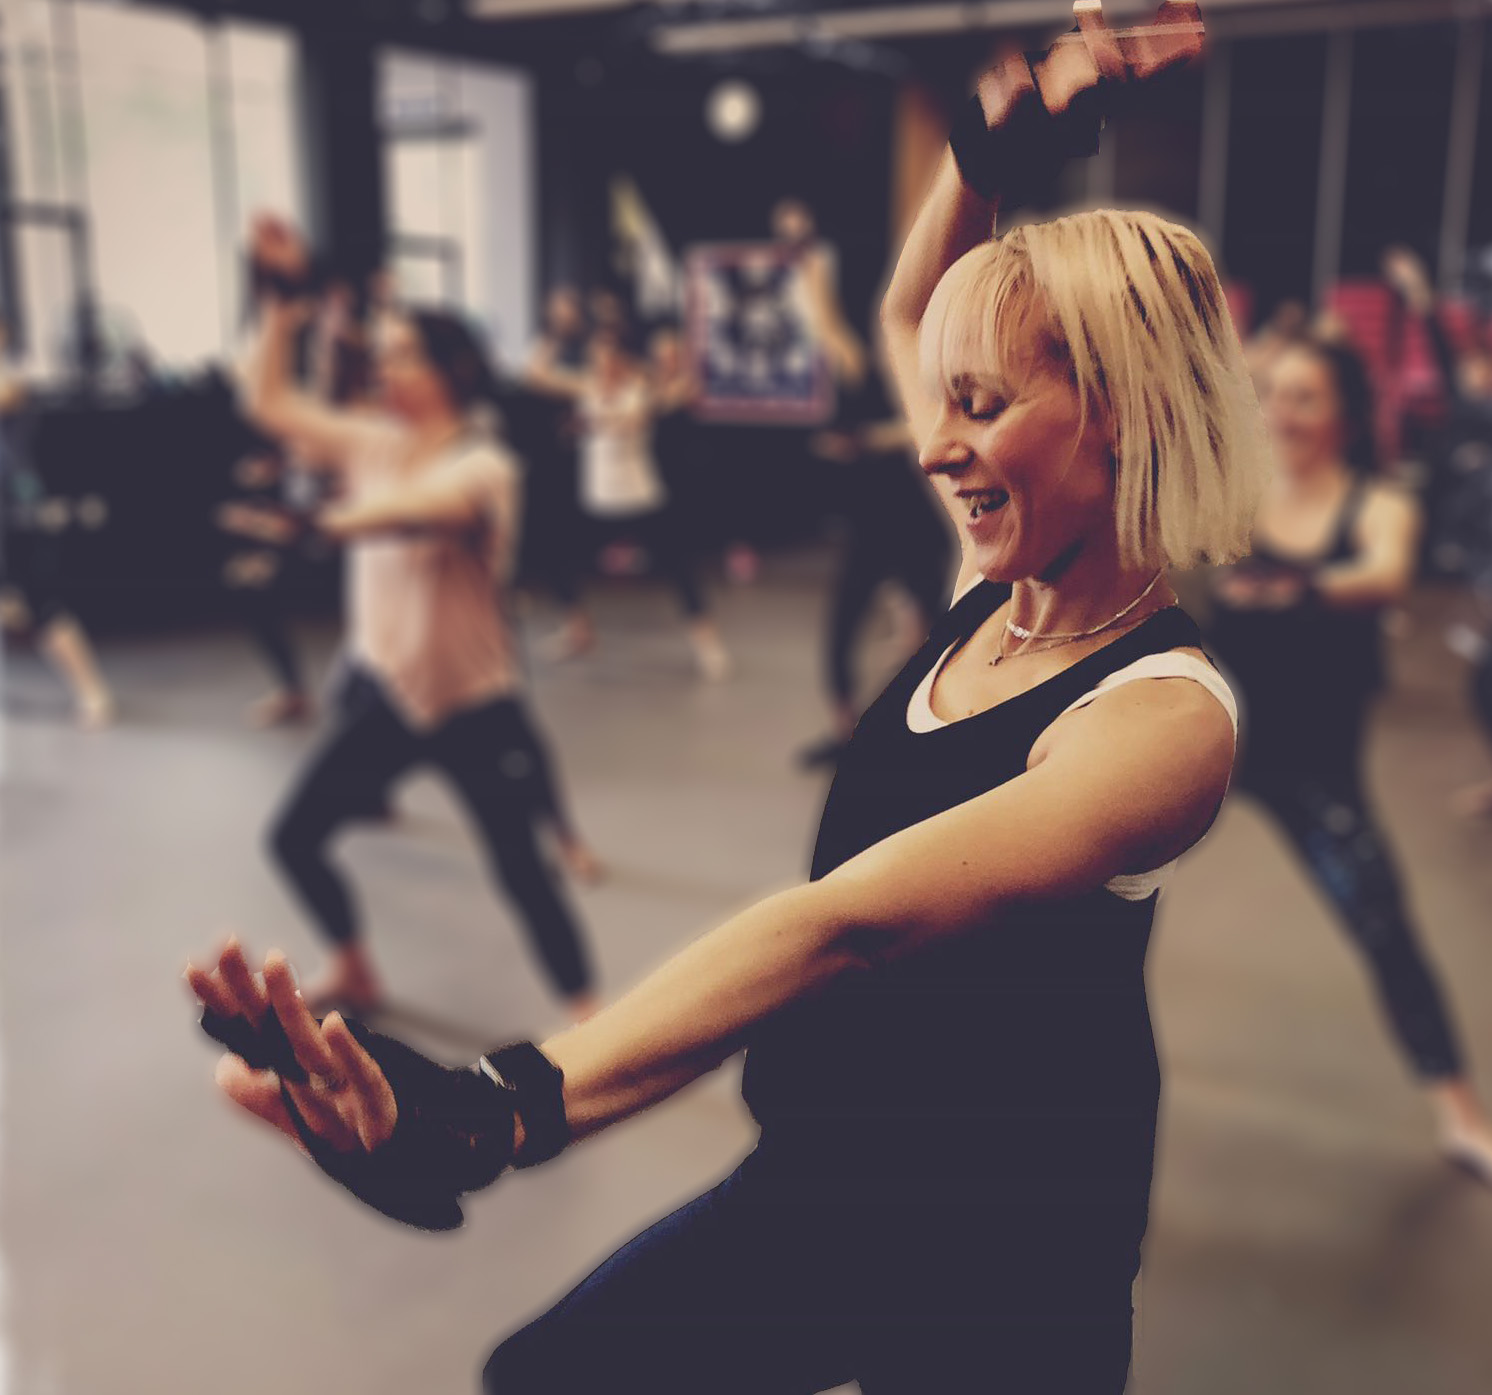 Annia Krystyna - Annia trained at the Arts Educational London Schools in Musical Theatre and then found herself working alongside physiotherapists for eleven years. This prompted Annia to get my fitness qualifications and move into teaching.Annia got her